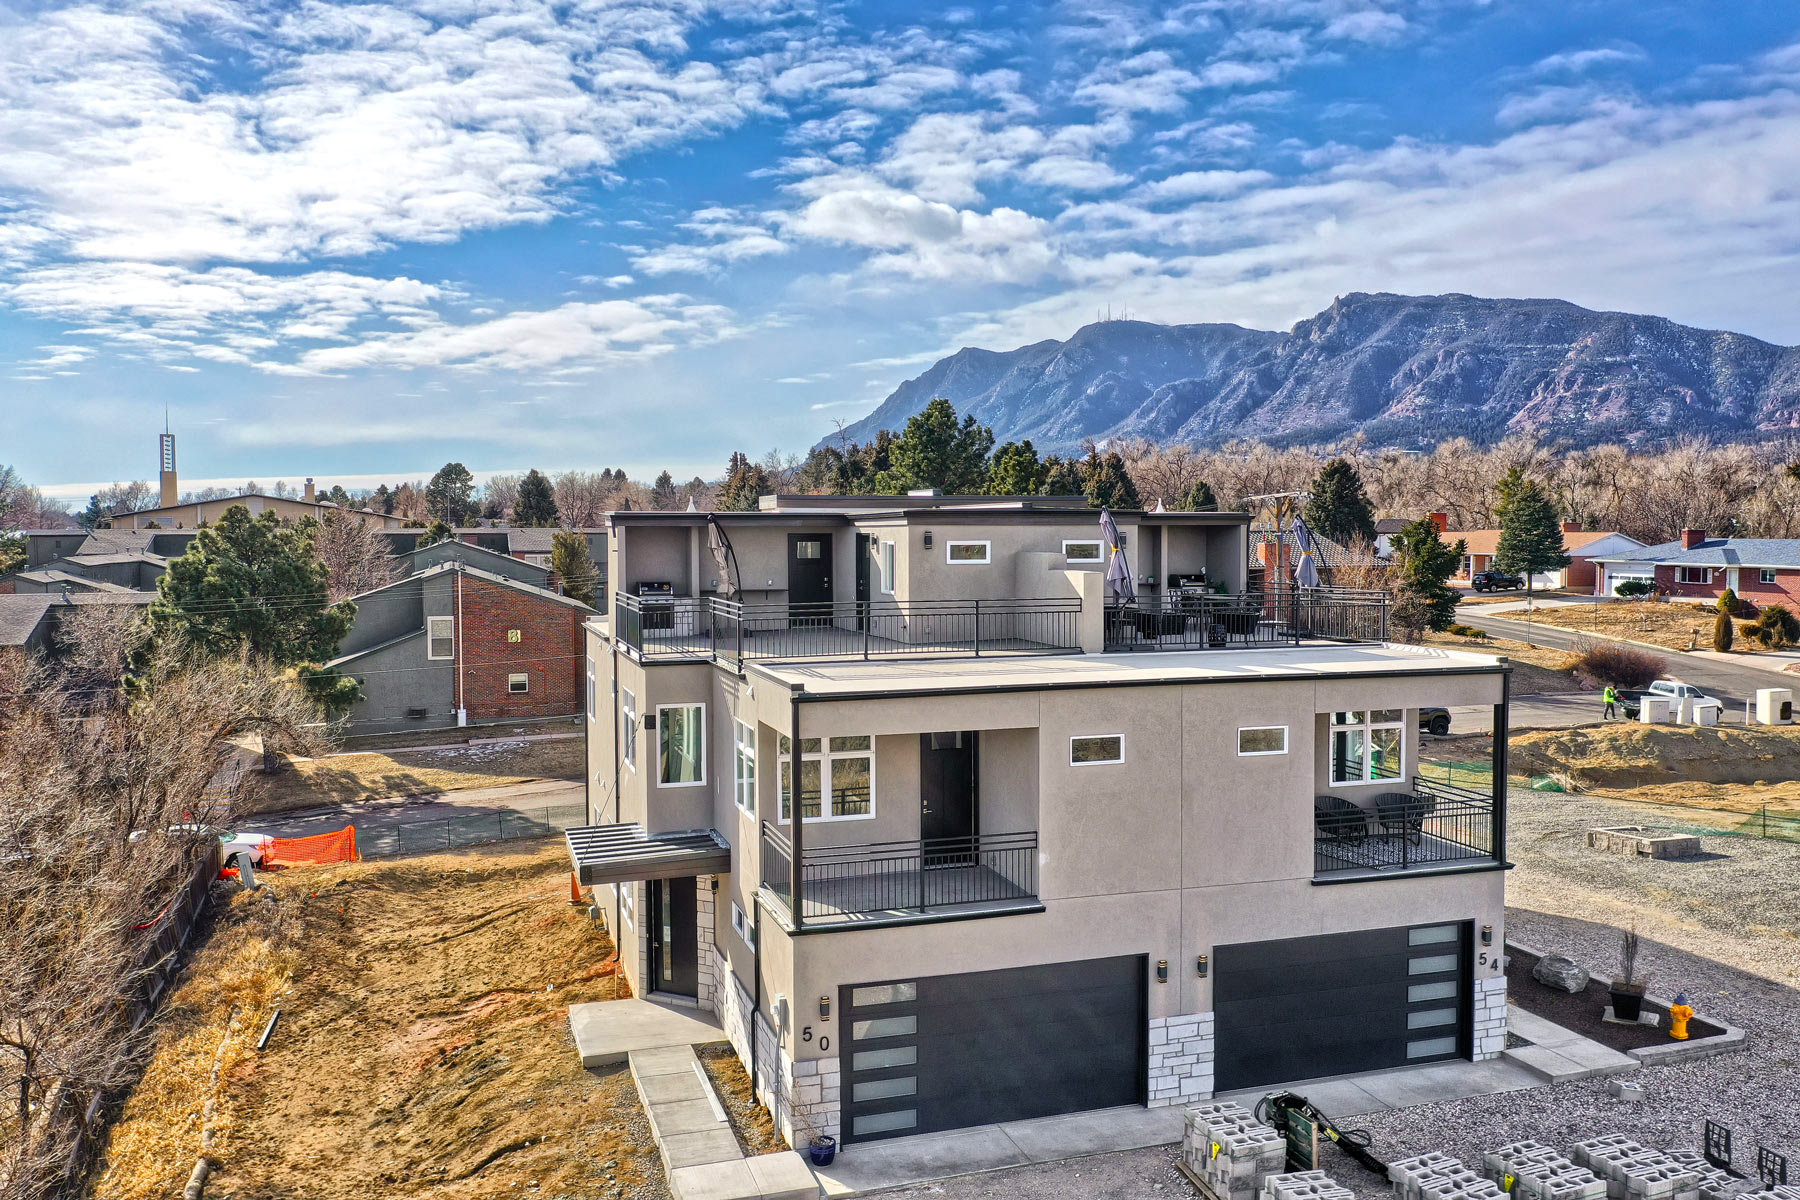 50 Sommerlyn is a beautiful Colorado Springs Home for sale